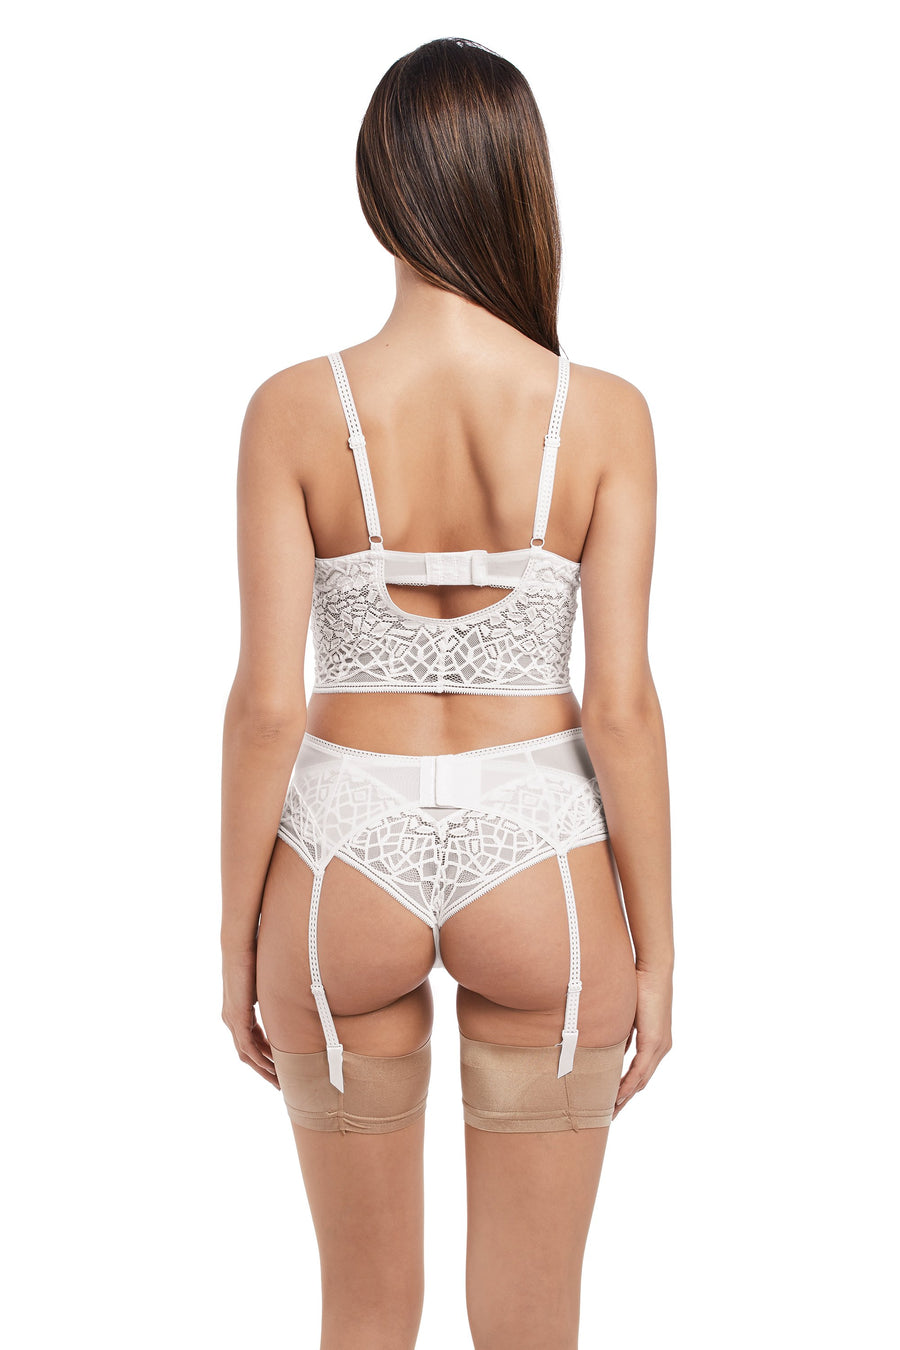 Soiree Lace White Suspender